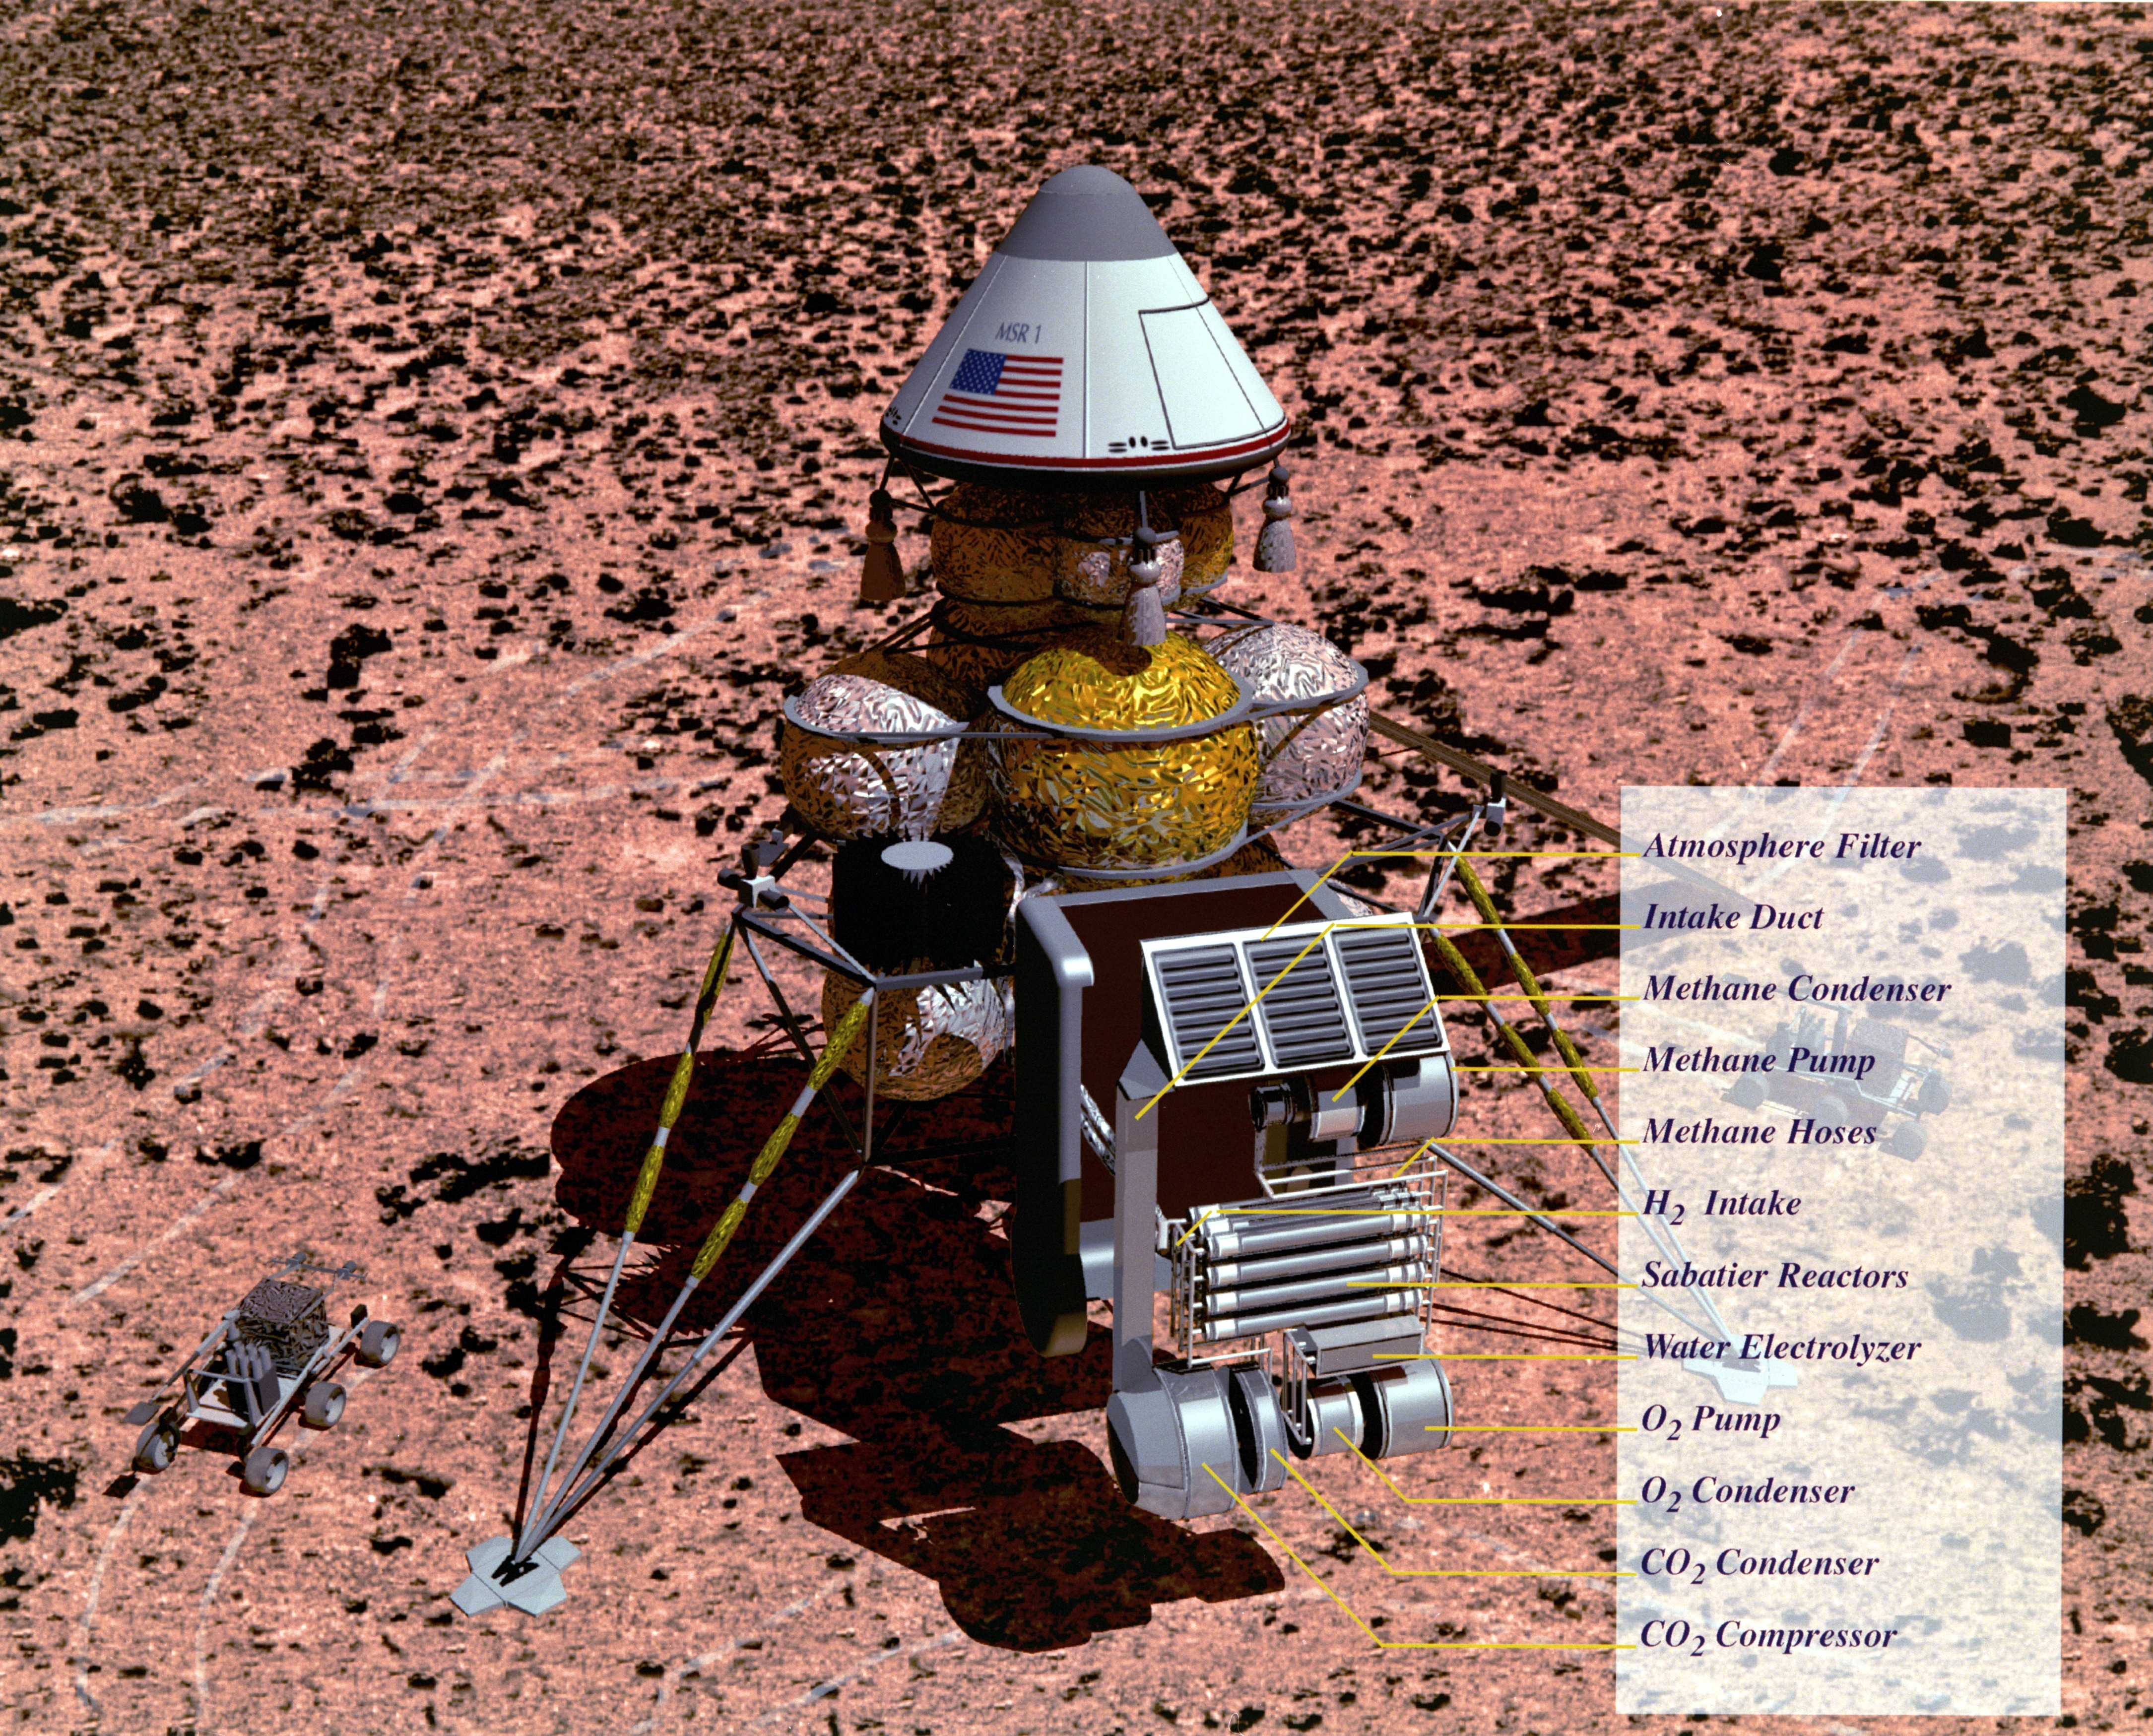 Mars In-Situ Resource UtilizationSample Return MISR